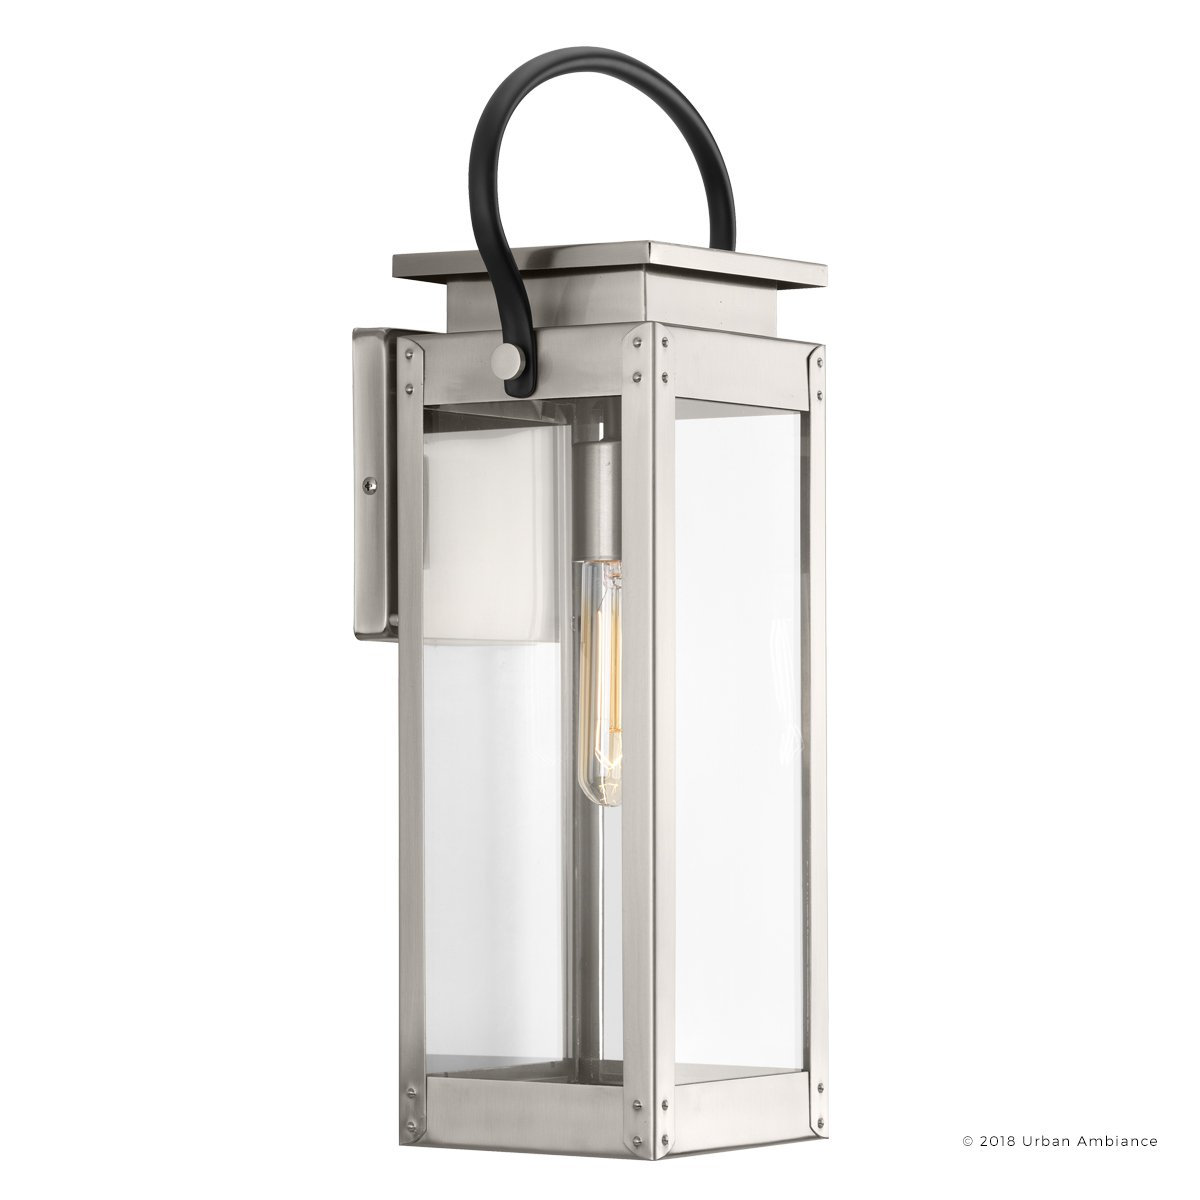 Luxury Modern Farmhouse Outdoor Wall Light, Medium Size: 19.375''H x 7.875''W, with Nautical Style Elements, Stainless Steel Finish, UHP1131 from The Darwin Collection by Urban Ambiance